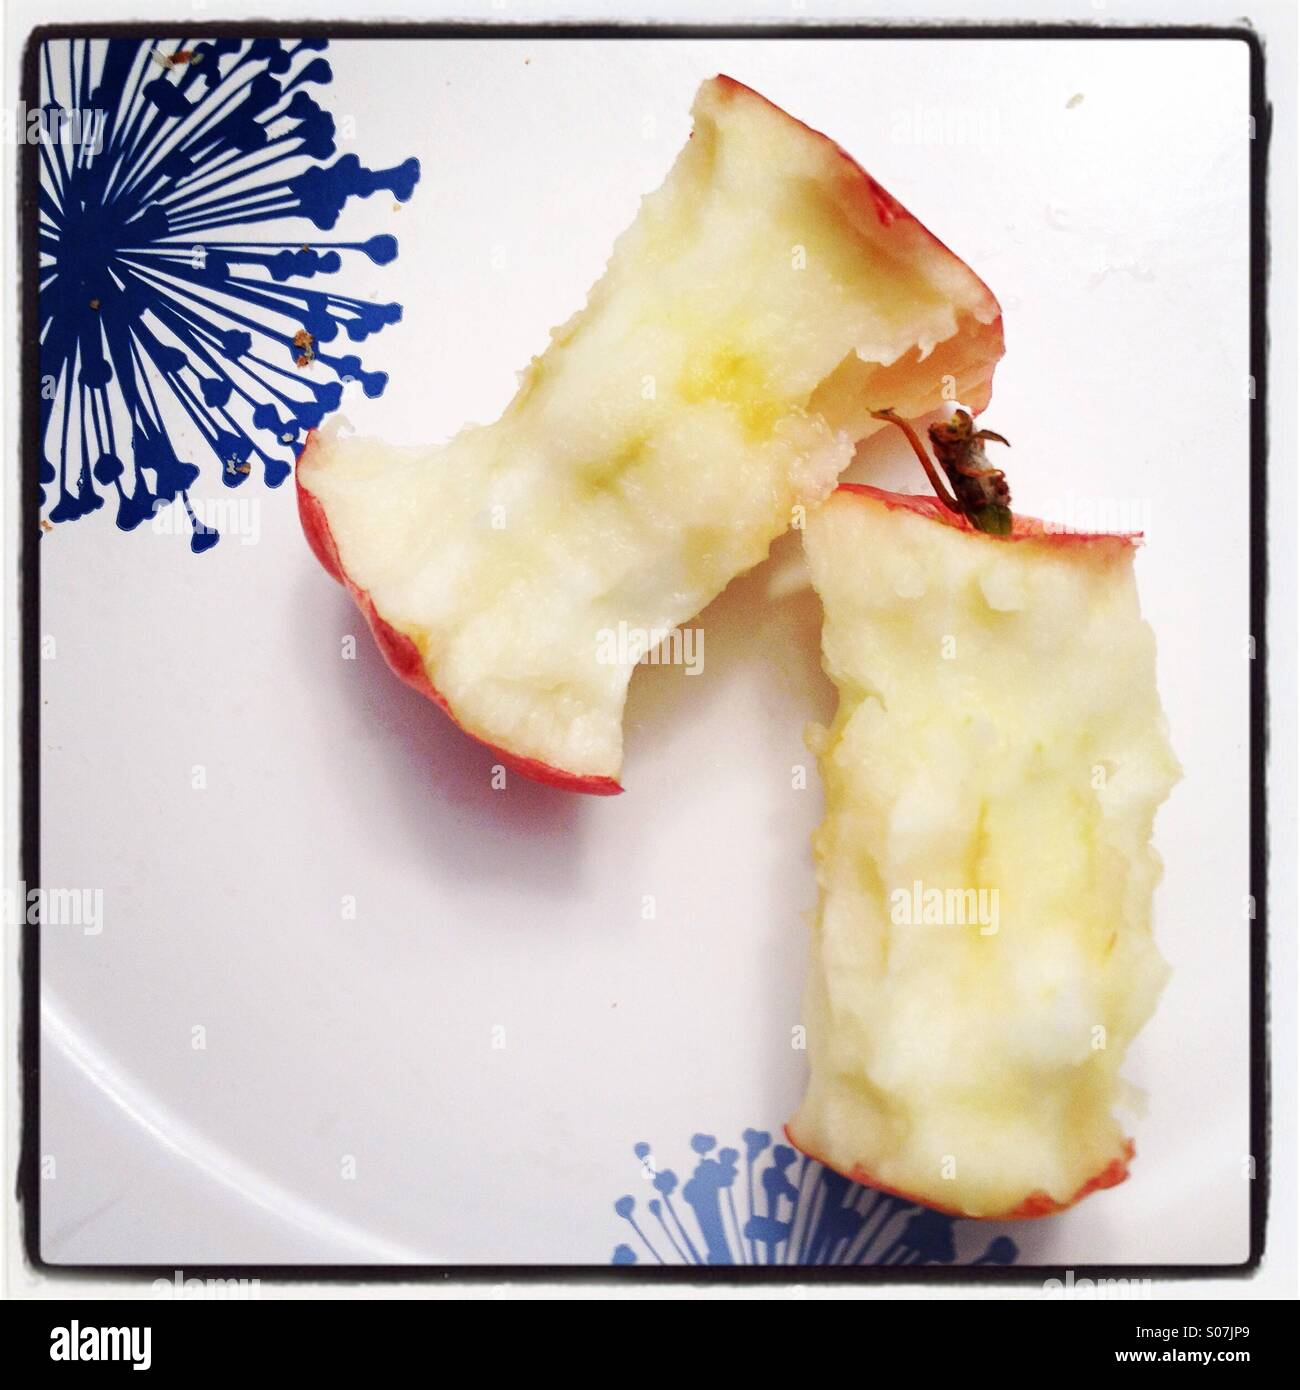 Apple cores on a decorative paper plate. Color. - Stock Image